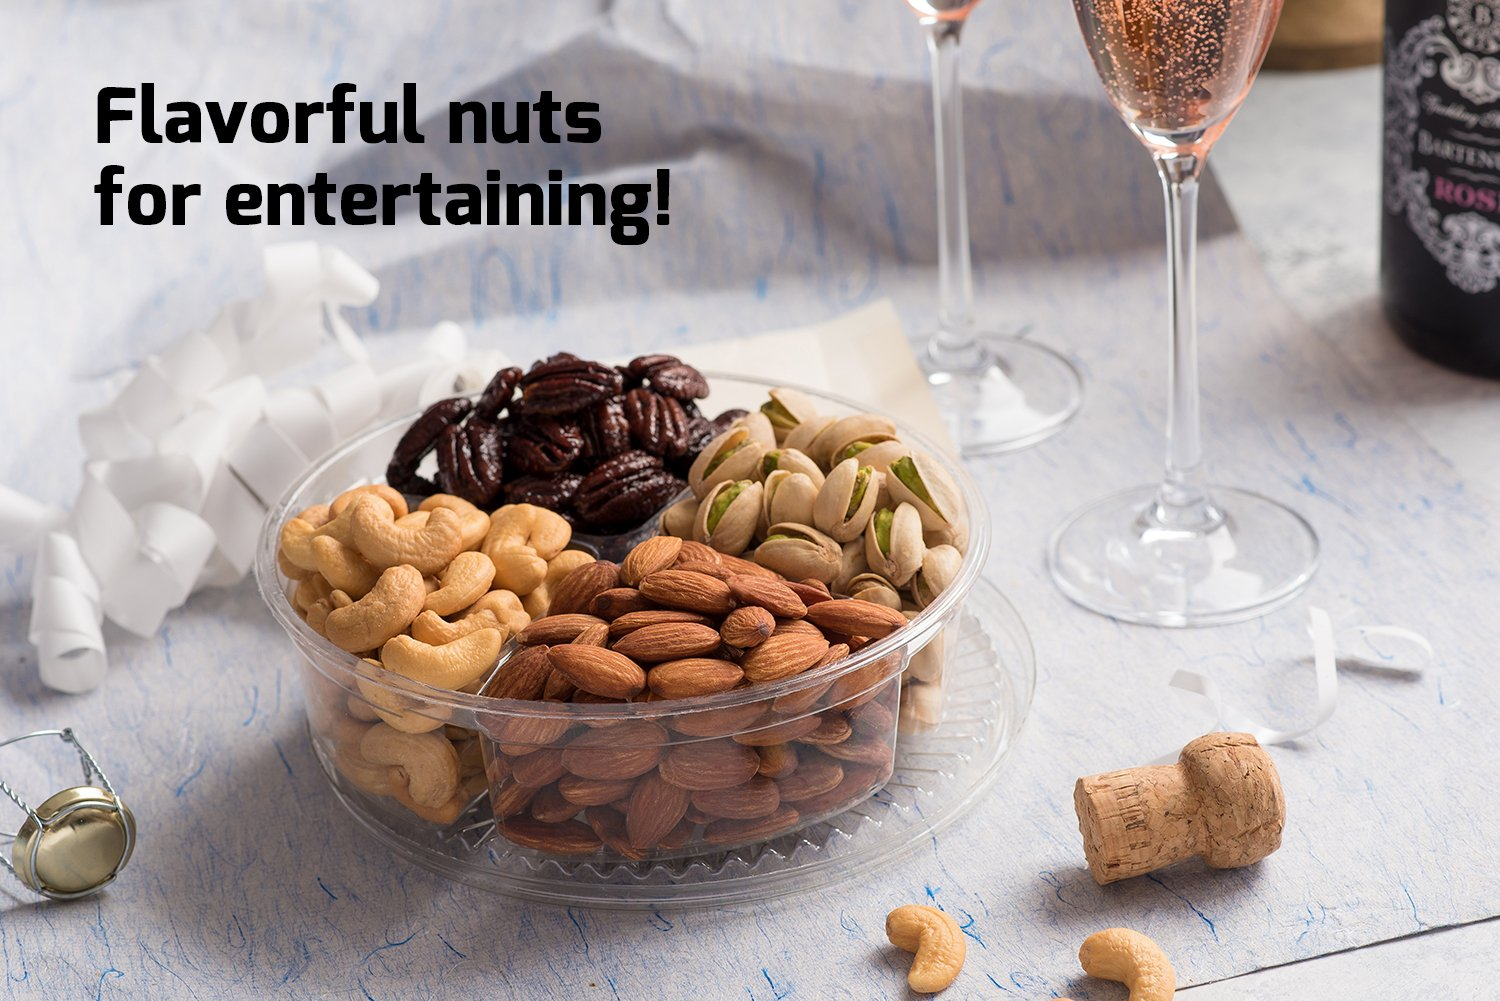 Nut Cravings Father's Day Gift Baskets - 4-Sectional Gourmet Mixed Nuts Prime Food Gift Tray - Healthy Holiday Gift Assortment For Birthday - Sympathy - Get Well - Corporate Gift Box - Or Any Occasion by Nut Cravings (Image #6)